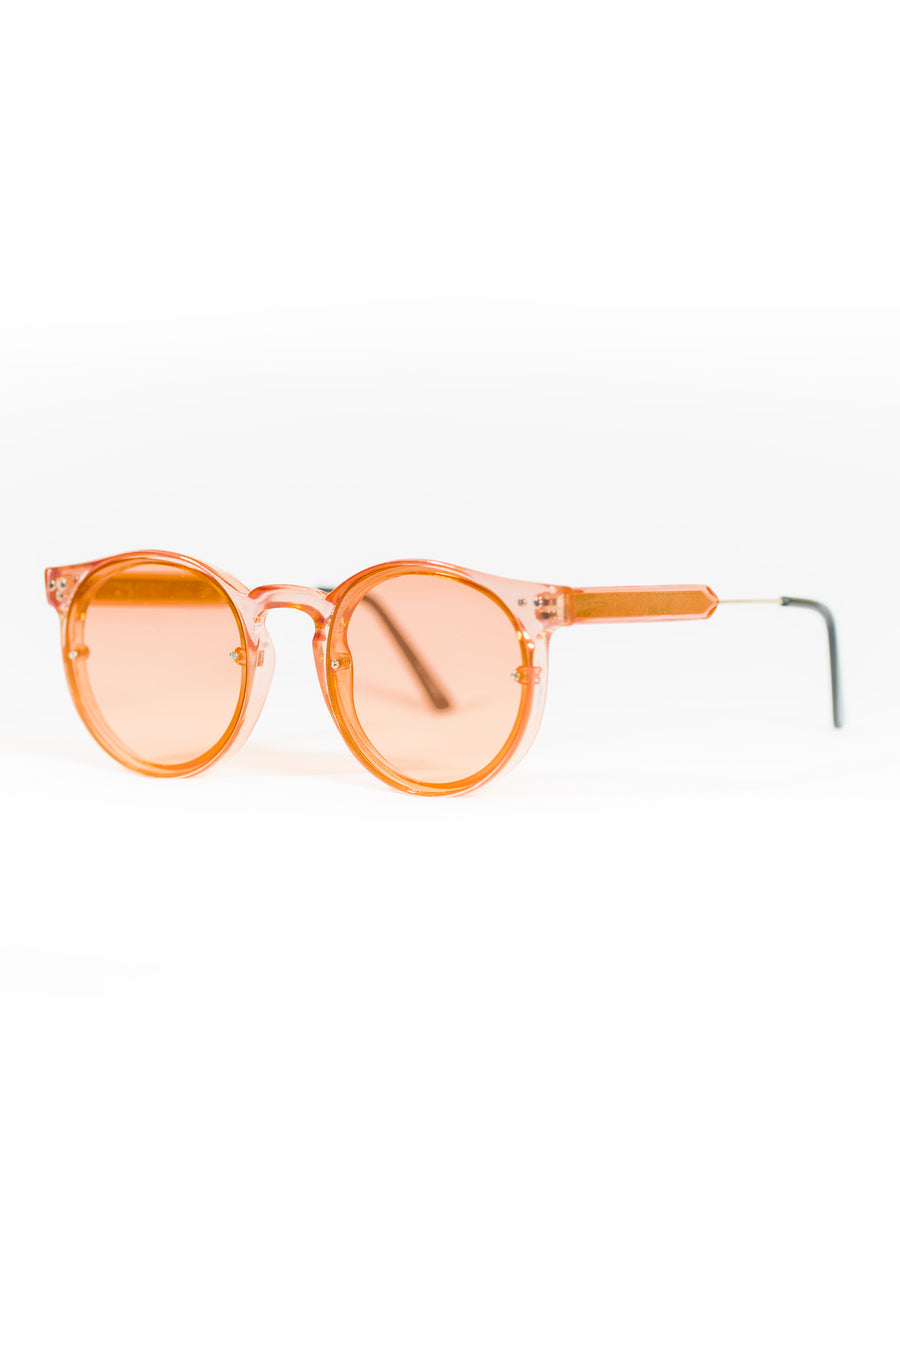 Spitfire Post Punk Sunglasses - Rose/Rose